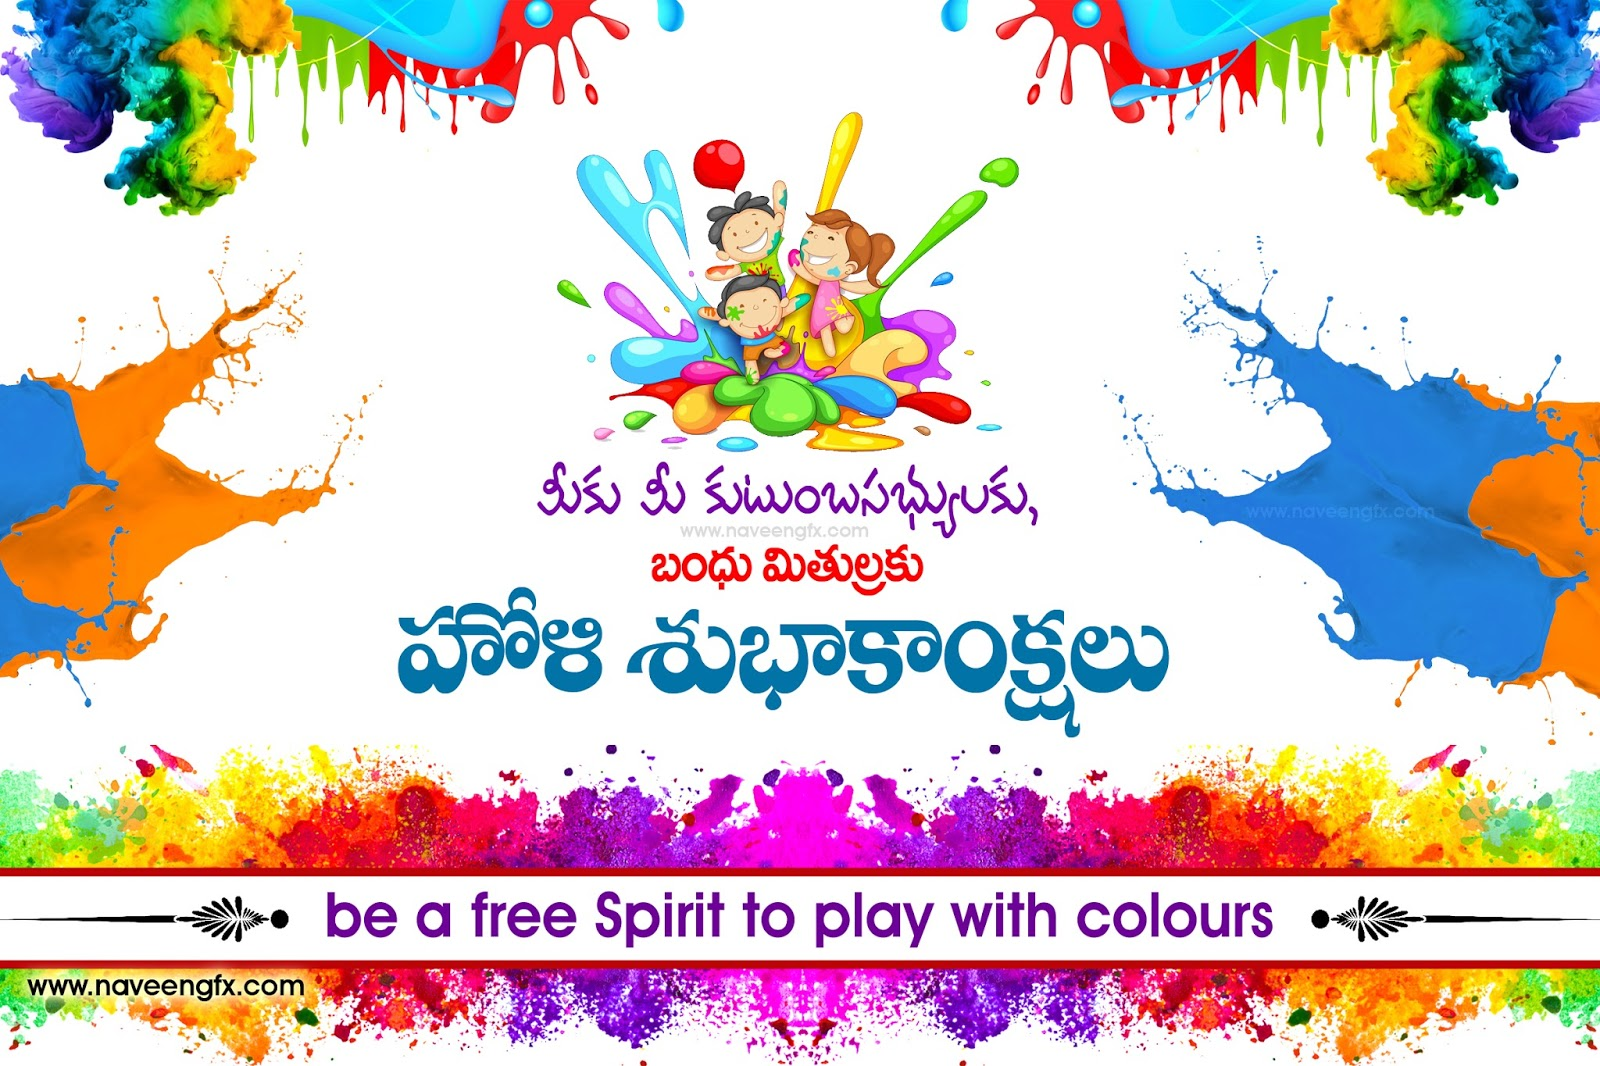 Happy holi wishes quotes and greetings in telugu language naveengfx colorful happy holi sms wishes in english happy holi text messages m4hsunfo